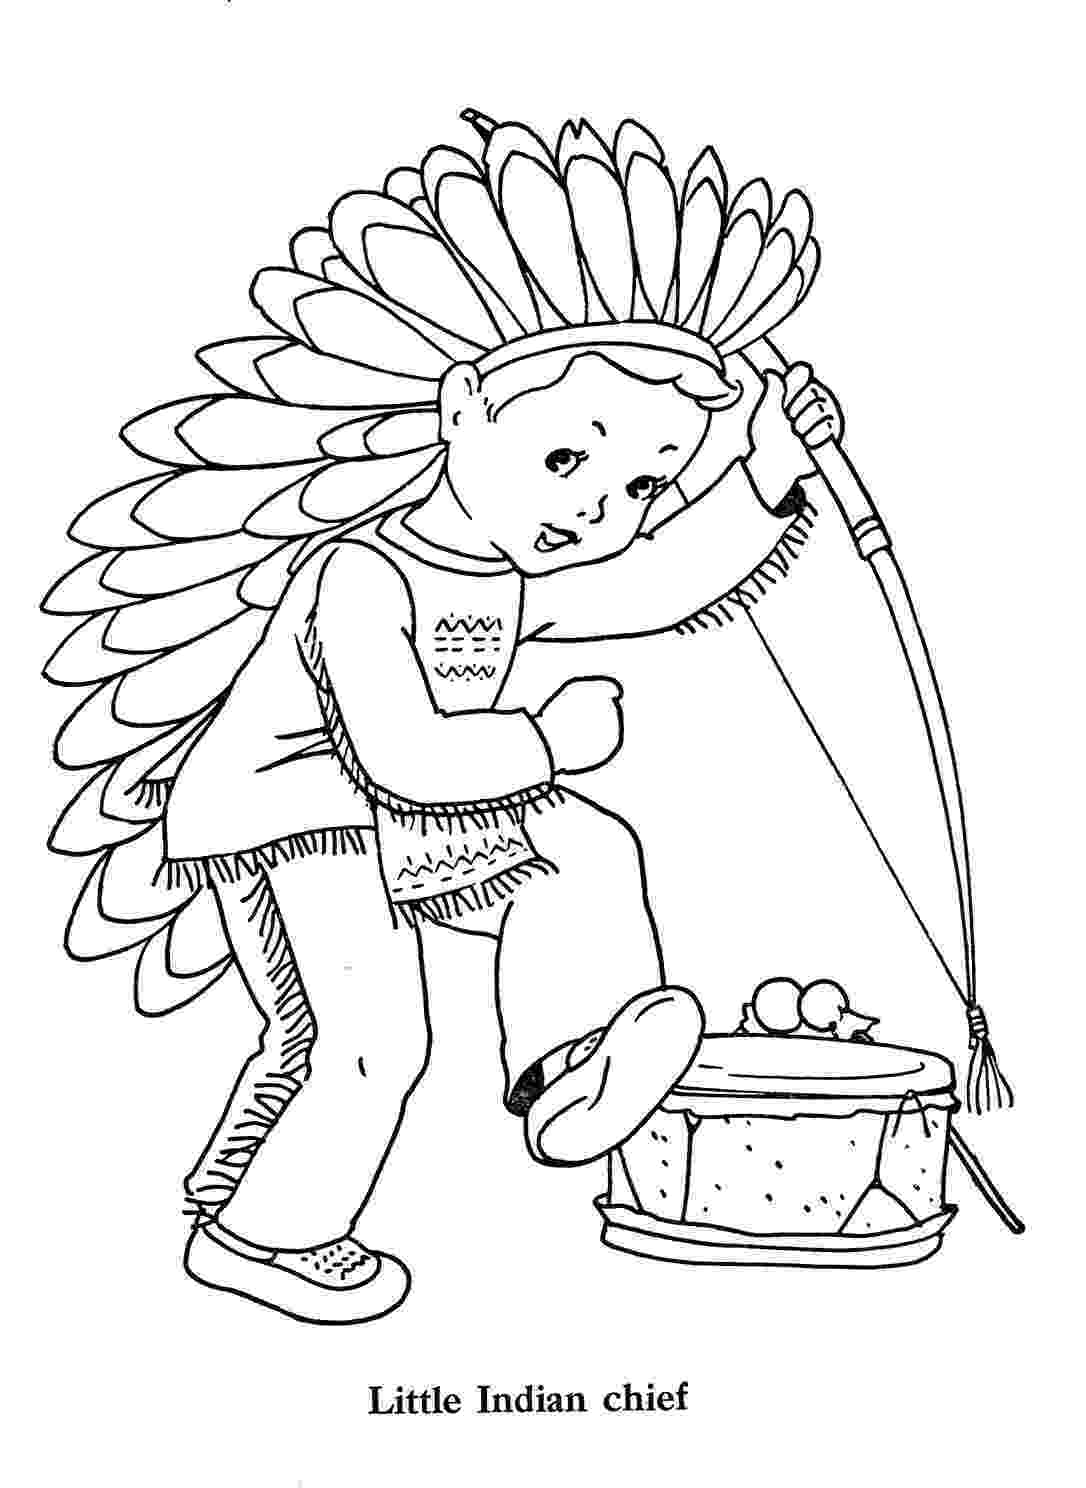 india coloring pages indian coloring pages best coloring pages for kids india pages coloring